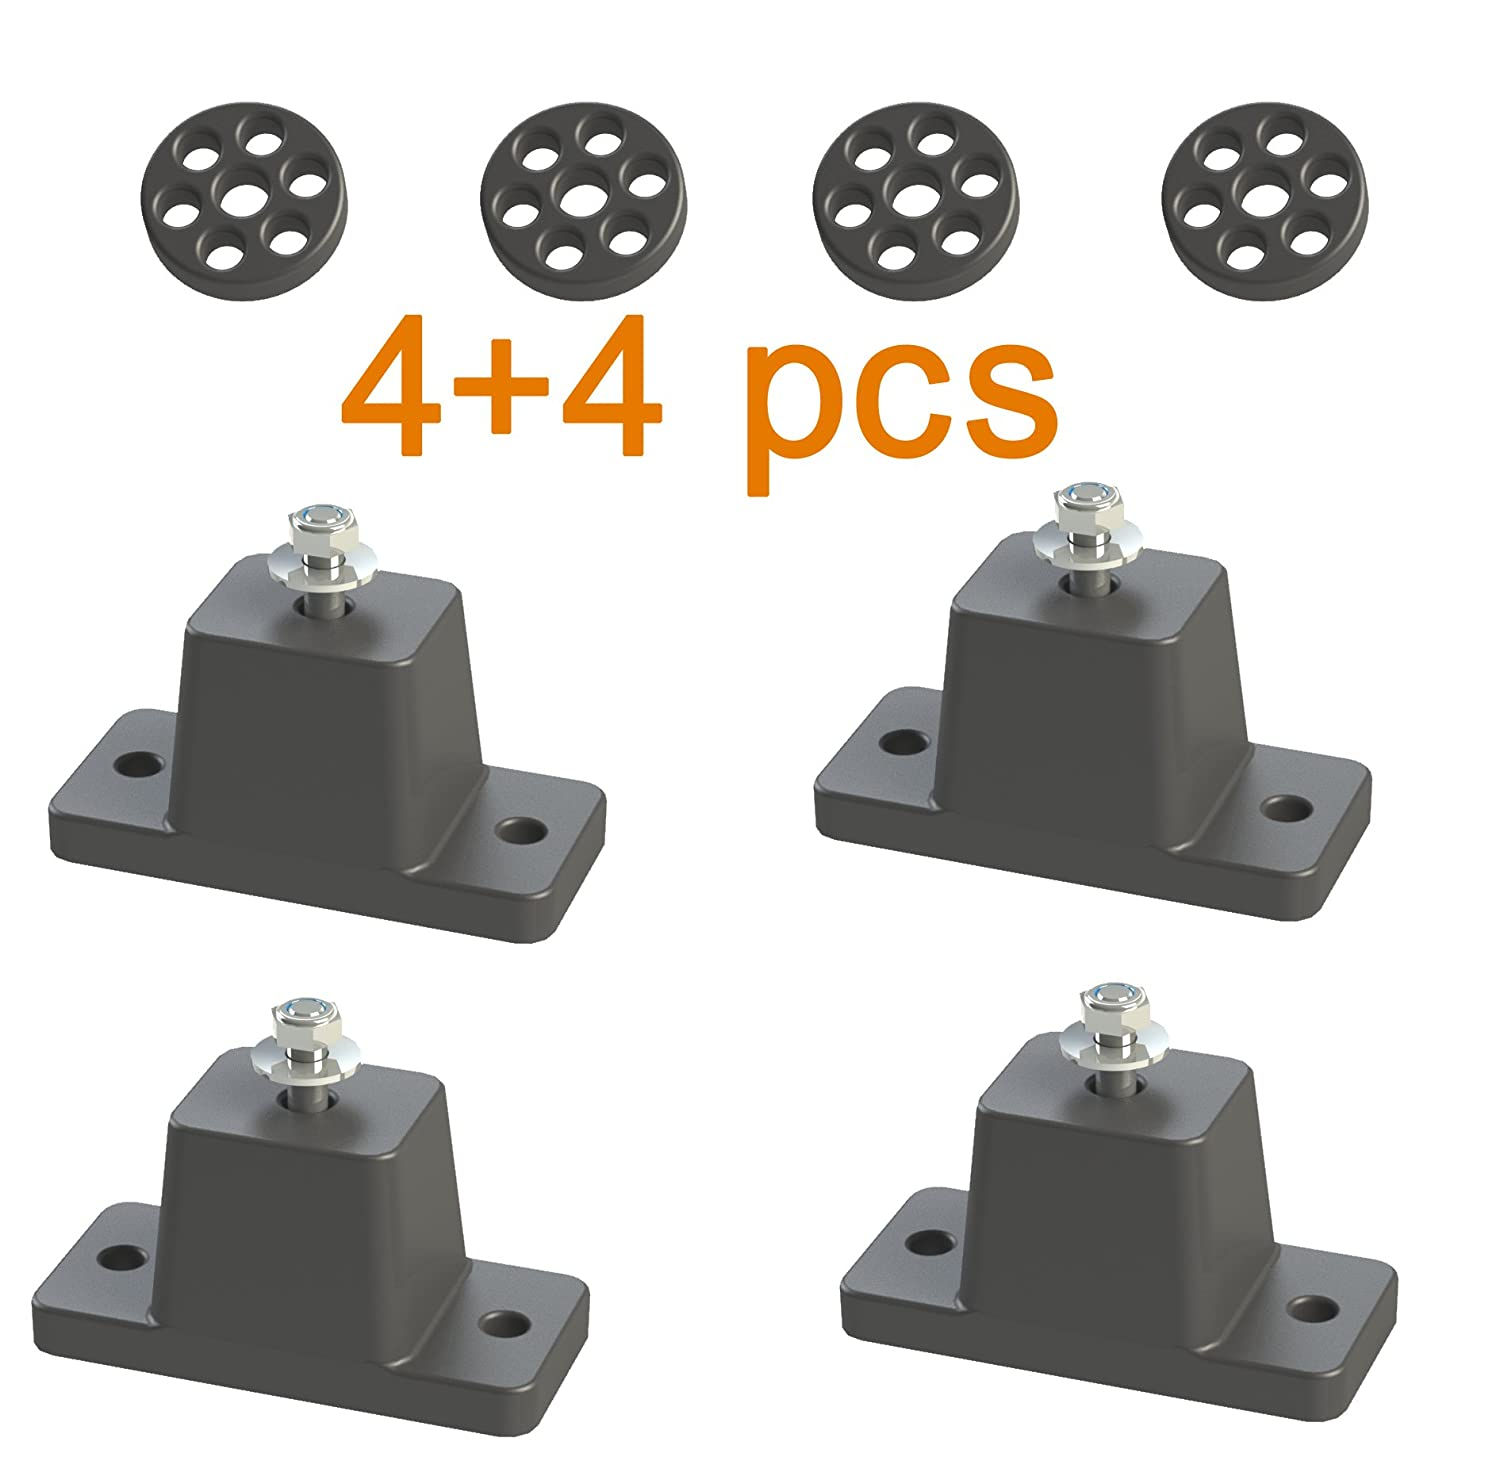 Anti-Vibration Shock Absorbing Rubber Mounting Bracket for Ductless Mini Spit Air Conditioner Condensers Jeacent Innovations RM01A-1